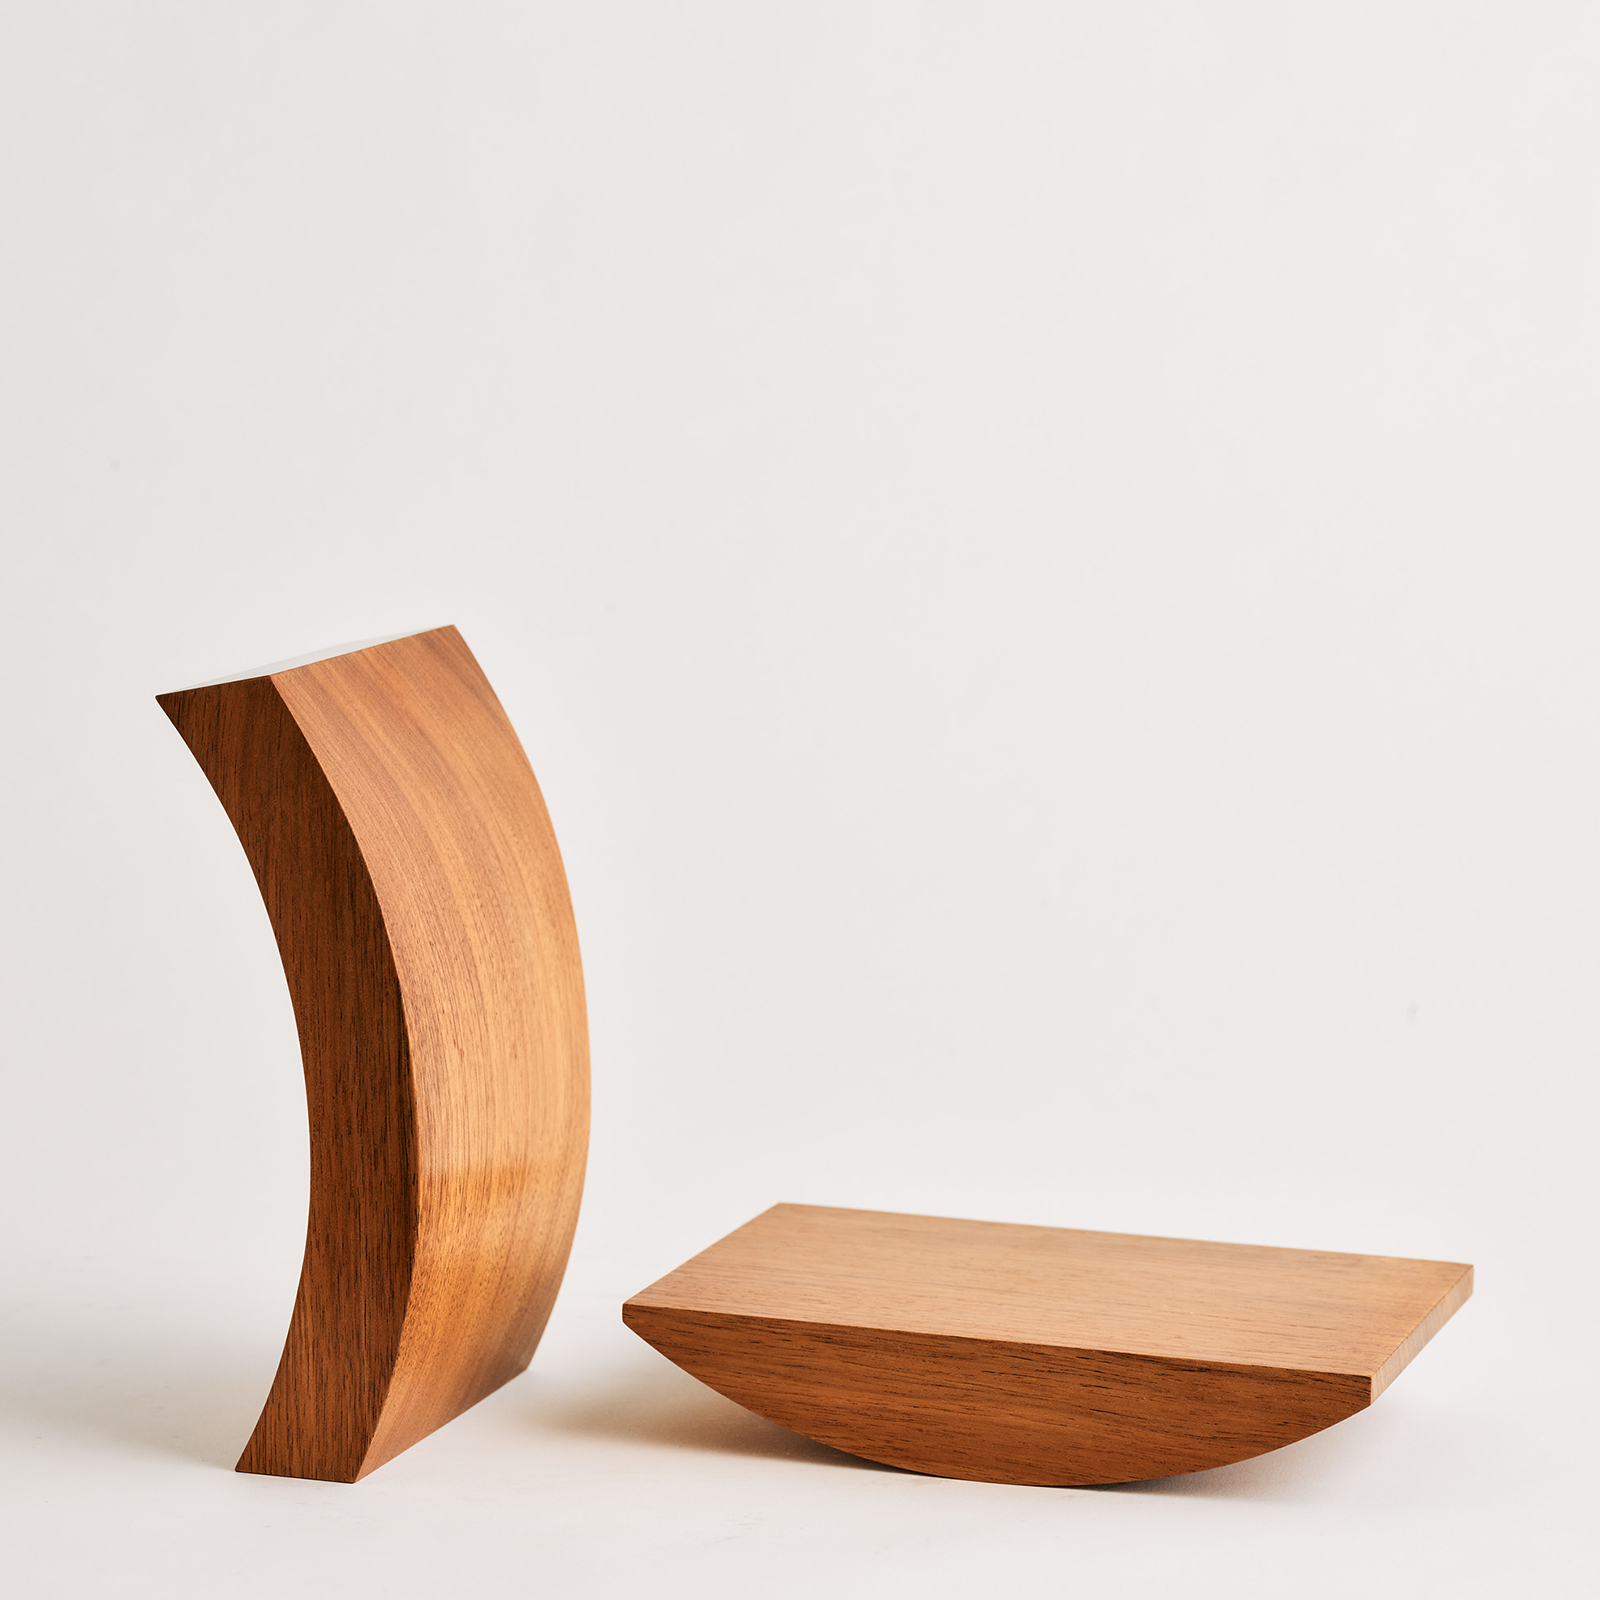 Timber Forms In Tasmanian Blackwood And Limited Edition By Zachary Frankel 9